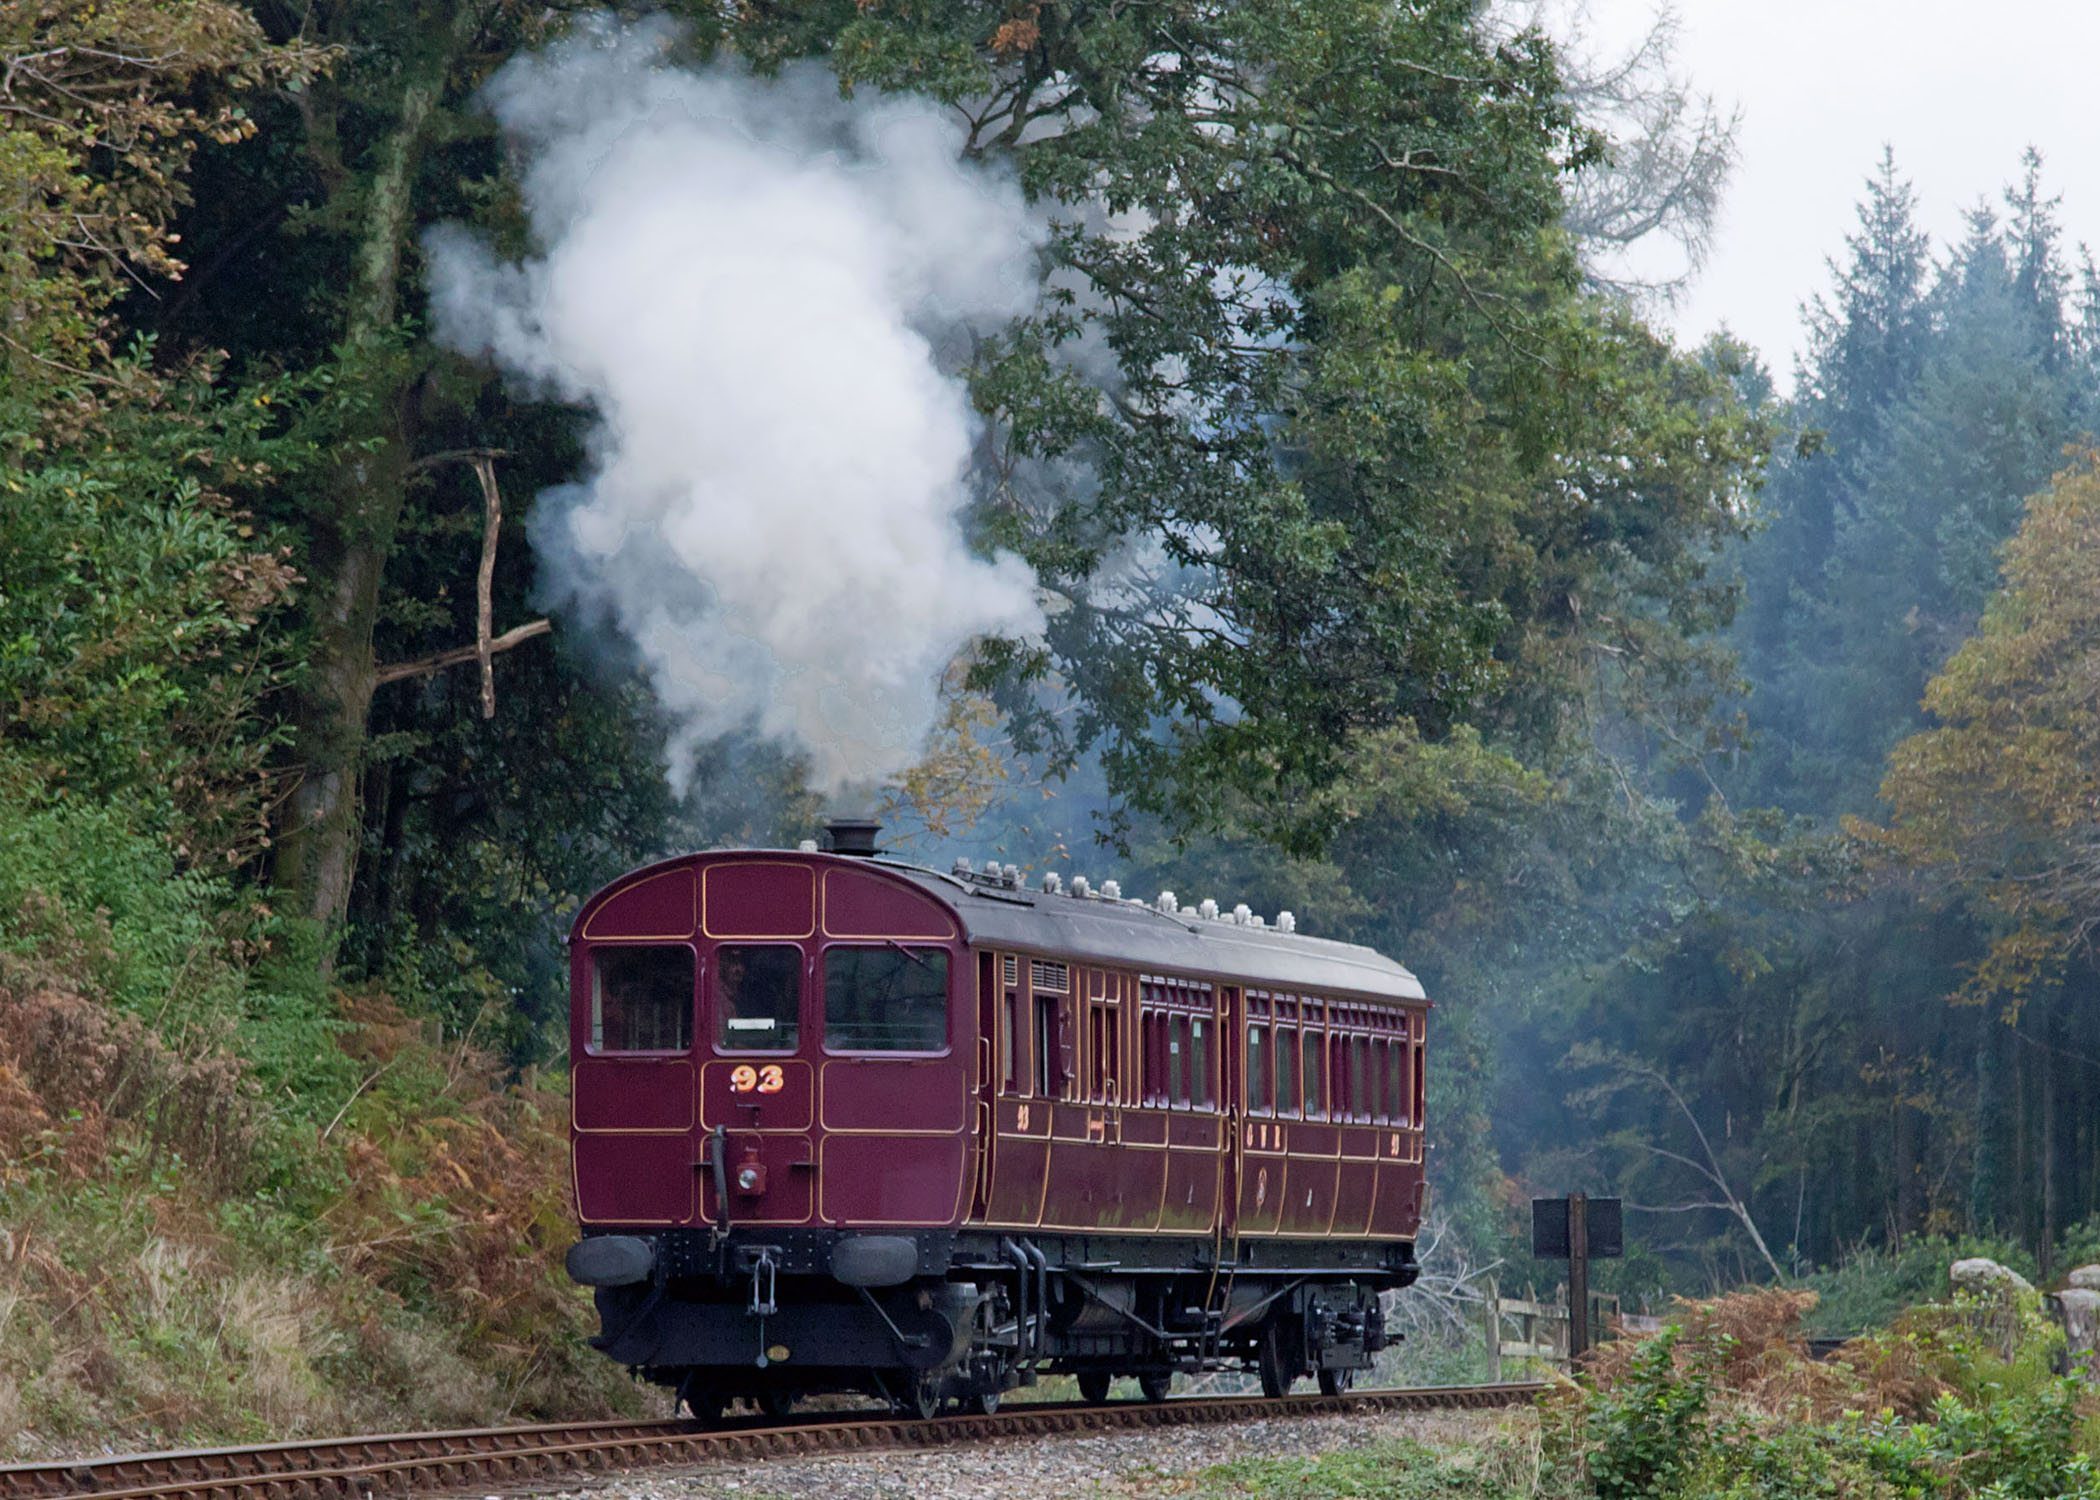 GWR Railmotor Bodmin Mike Webber Copyright Image